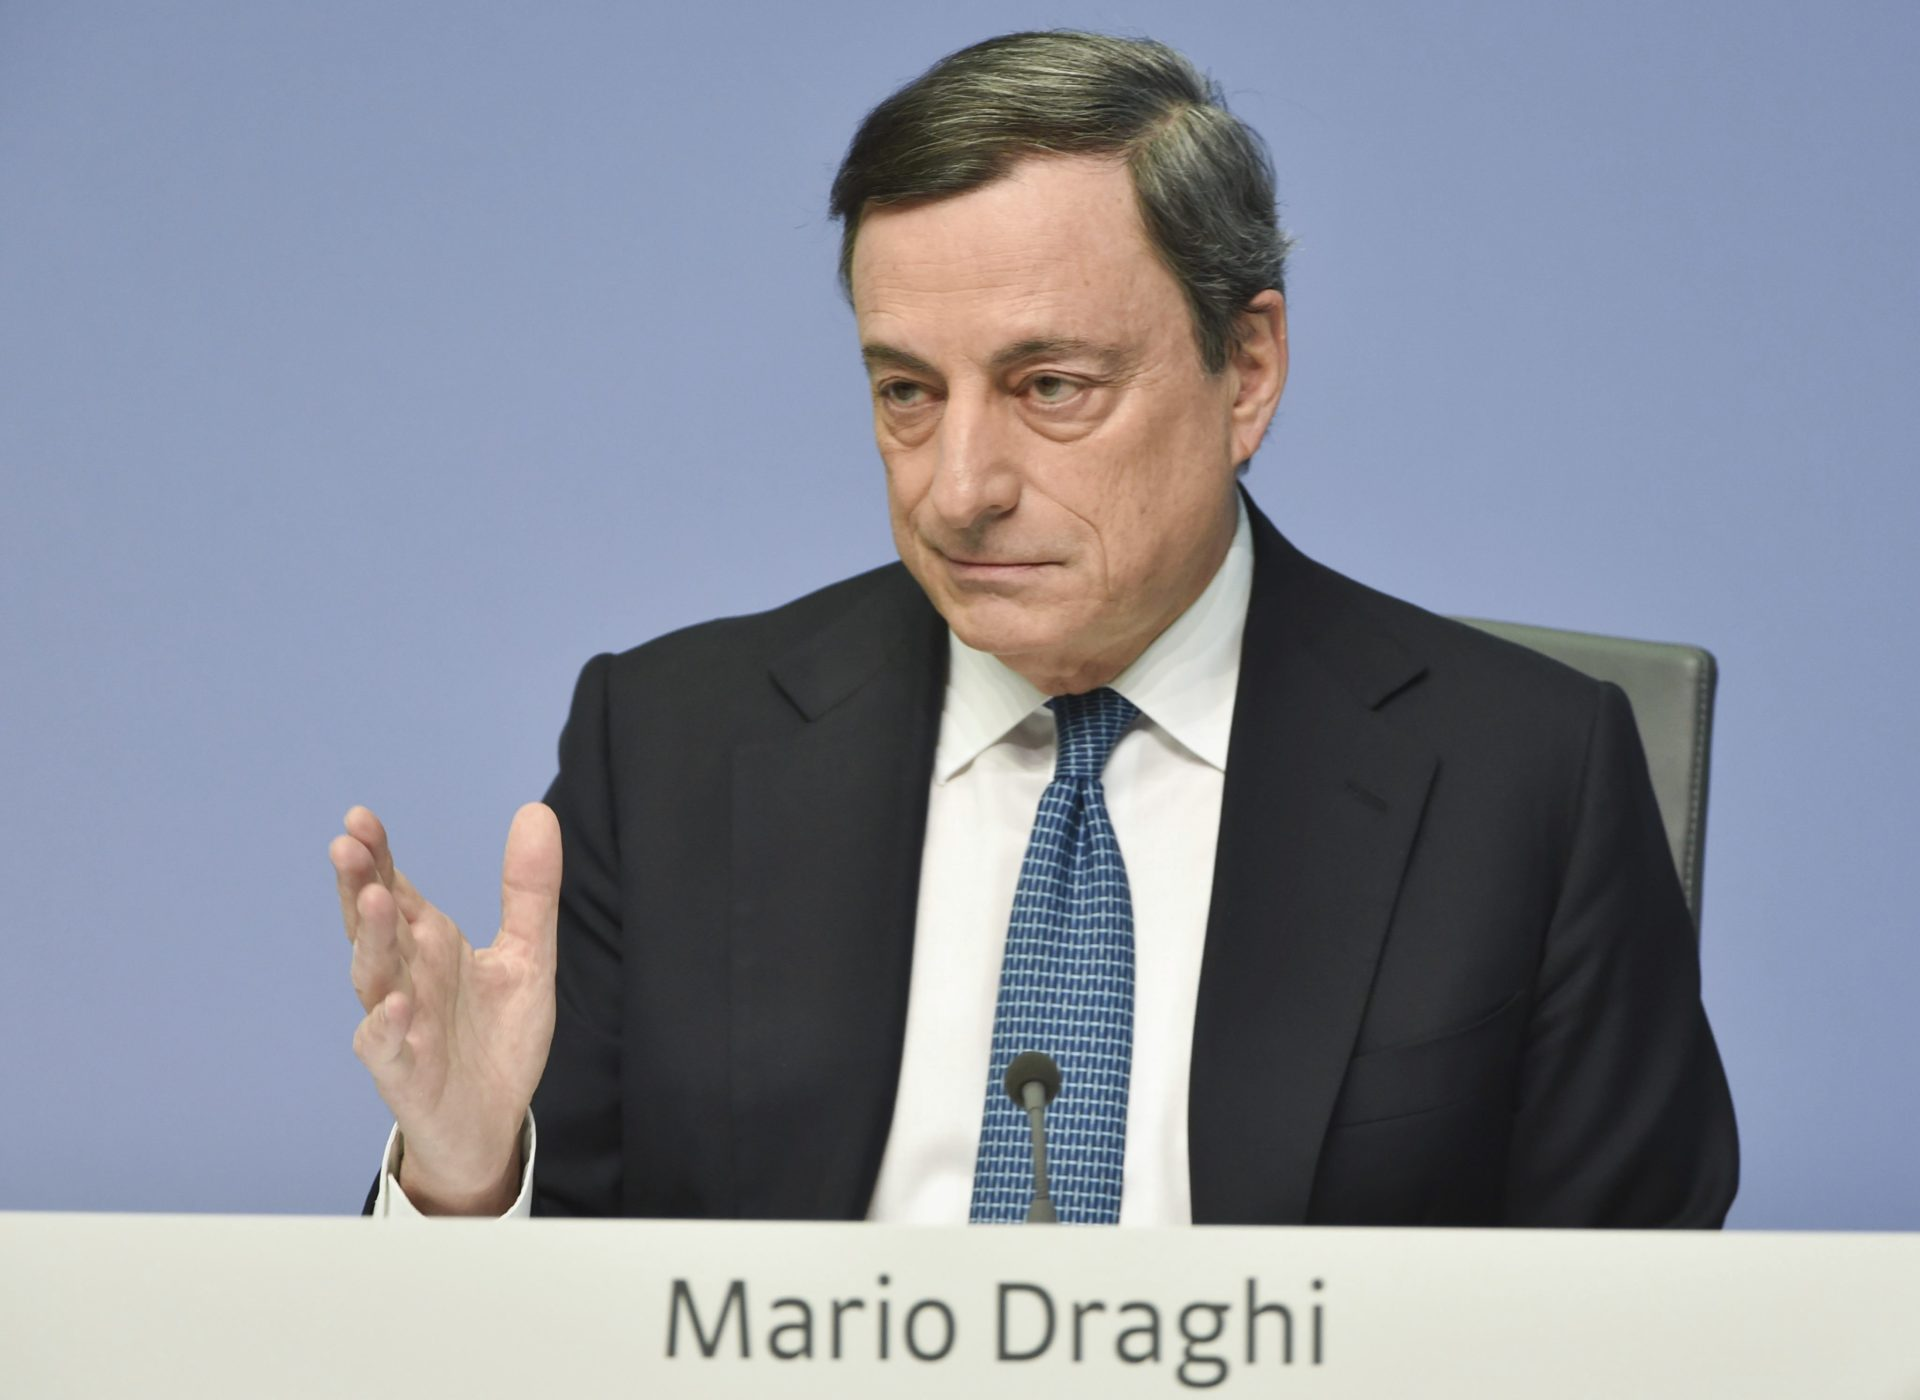 Mario Draghi. BCE. Banco Central Europeo